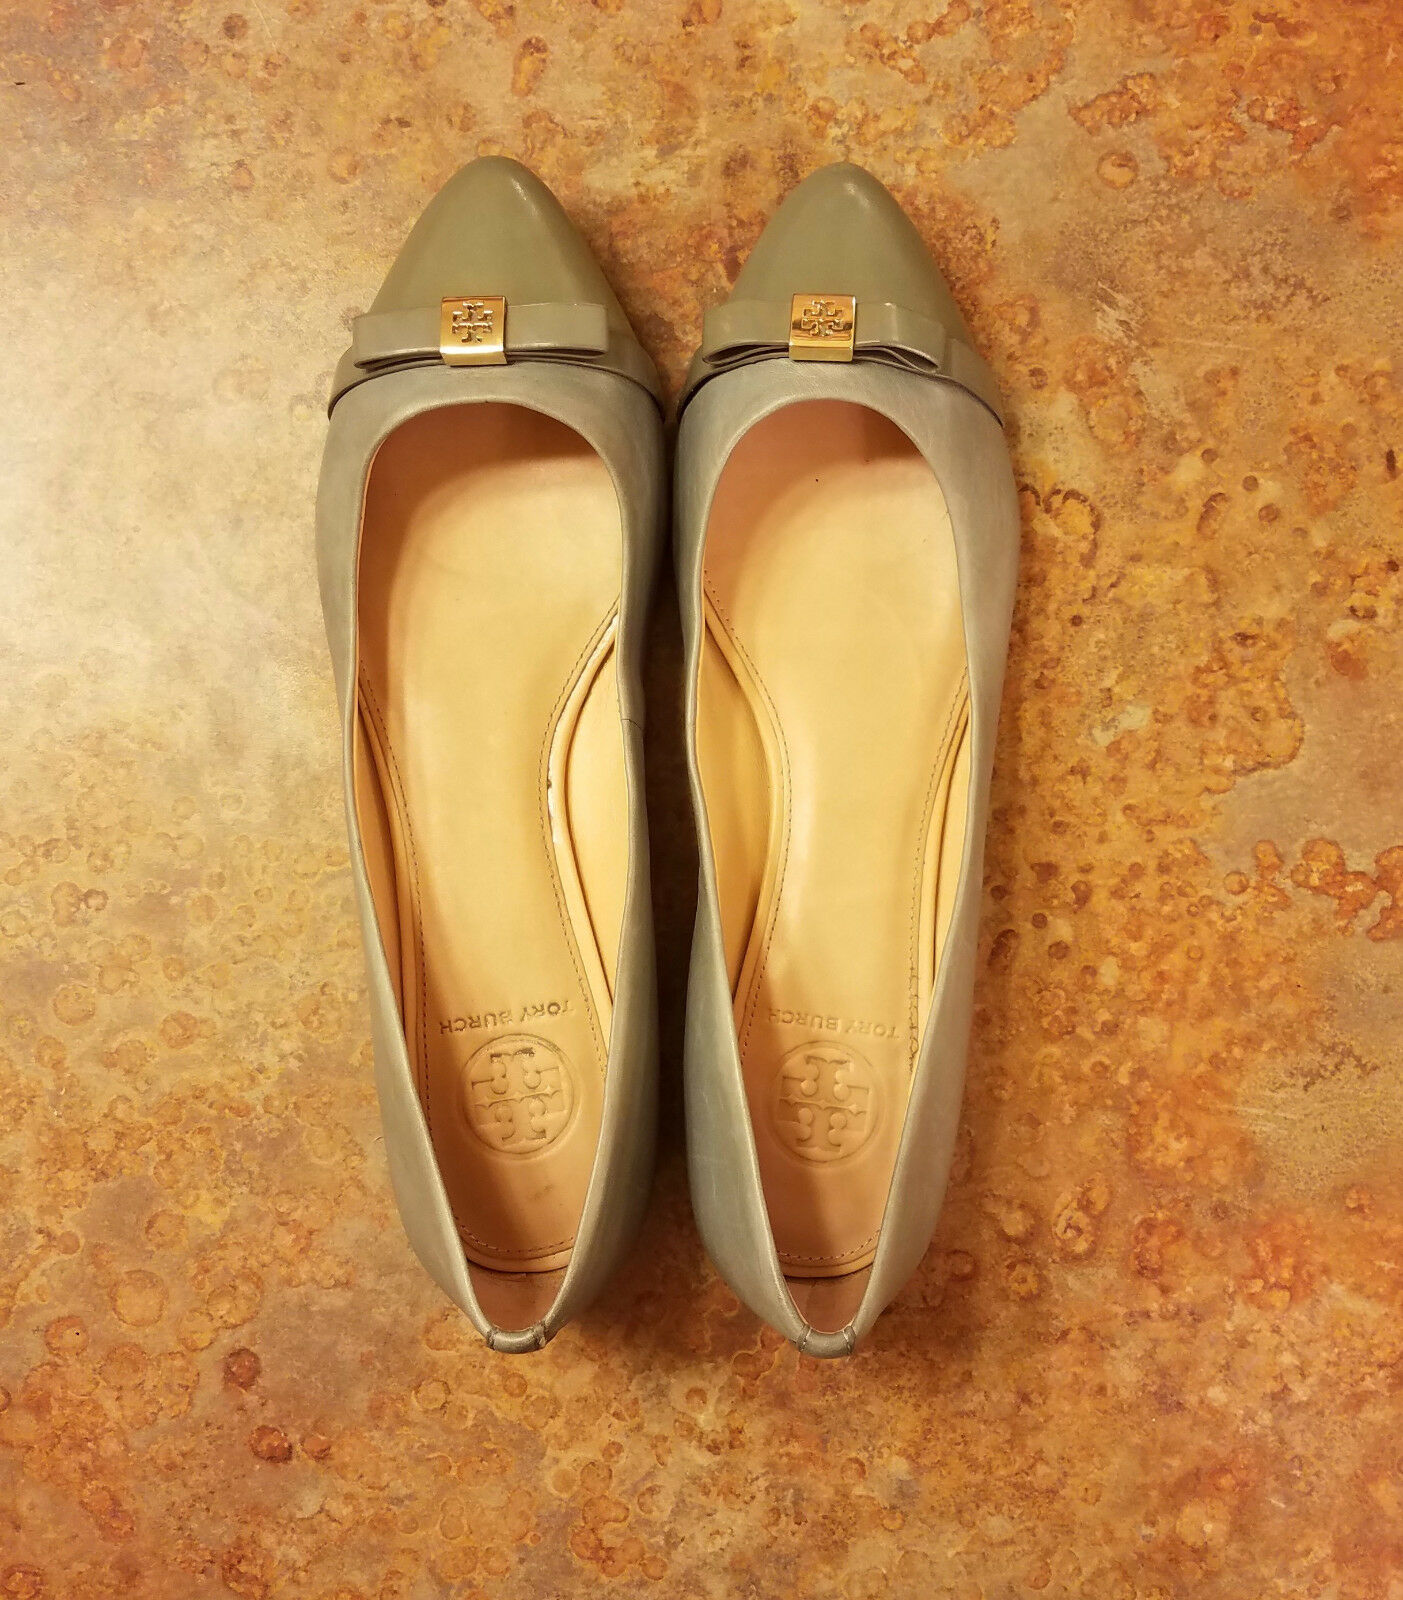 Tory Burch 'Bow' bluee Green Patent Leather Ballet Ballet Ballet Flat Womens Size 9 C MSRP  255 3a37ca